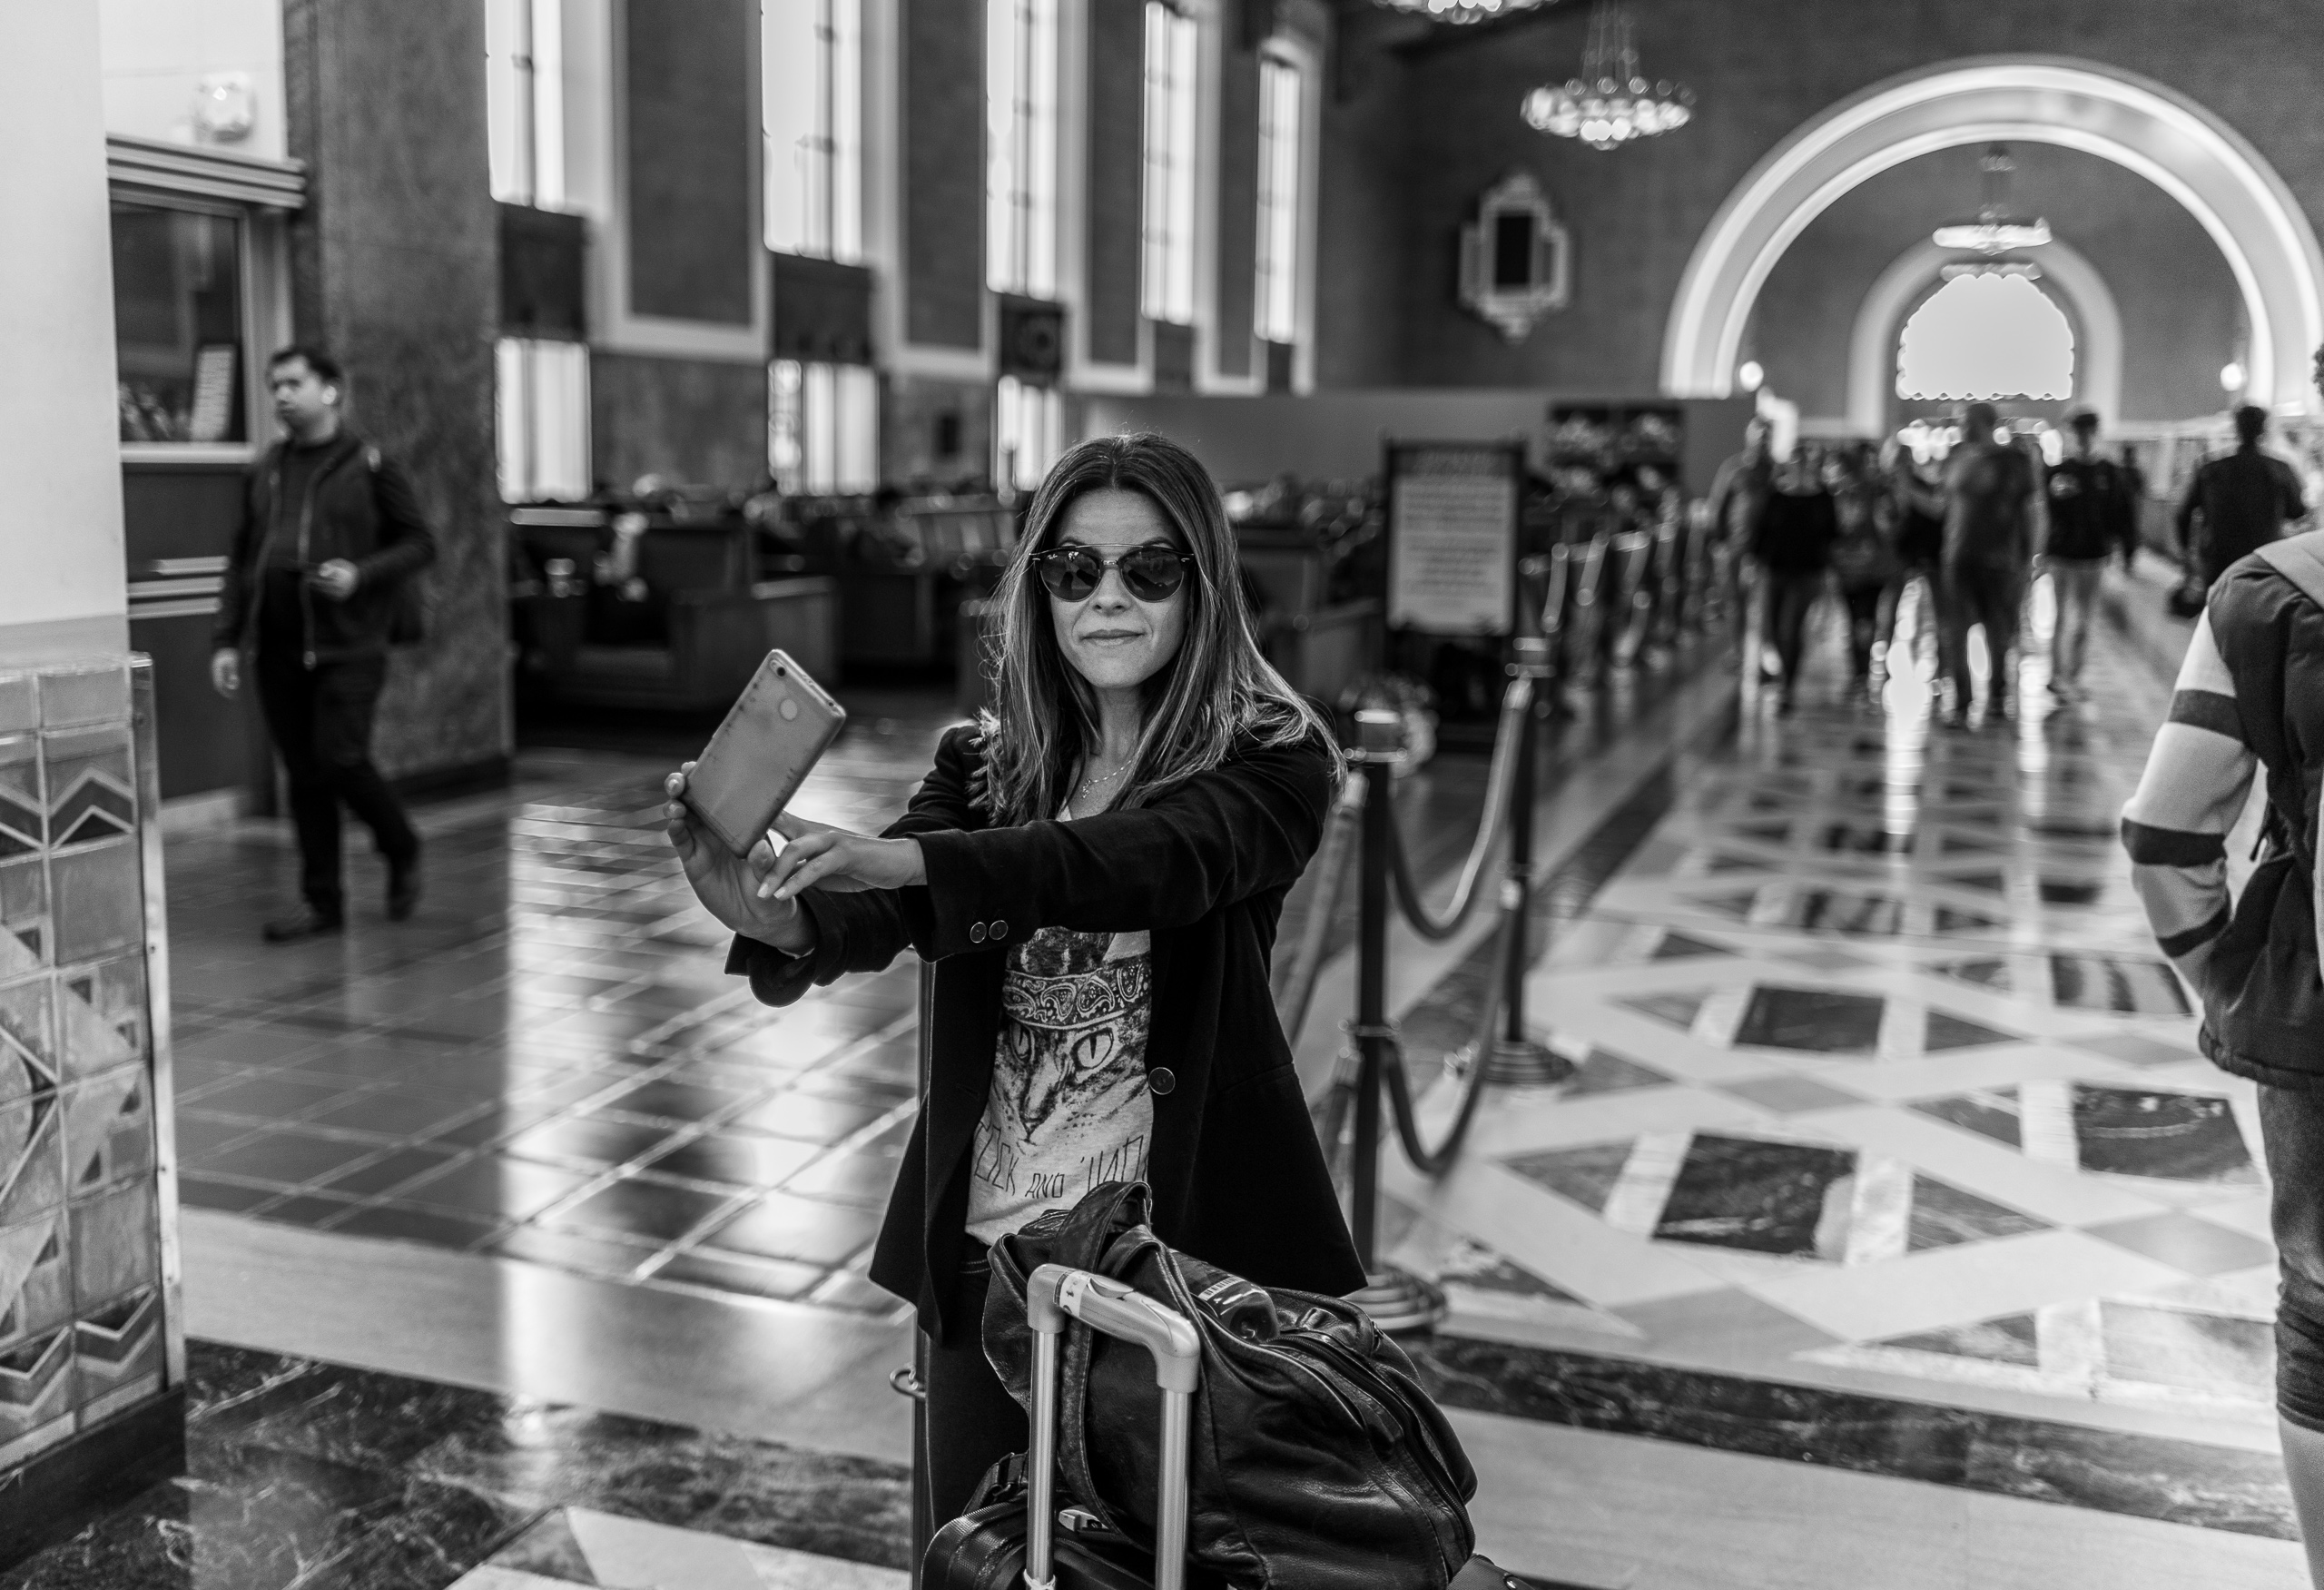 a woman in sunglasses, a black jacket, and a cat t-shirt stands with her luggage and her cell phone extended in front of her to take a selfie with the arches of Union Station's main terminal receding in the distance behind her